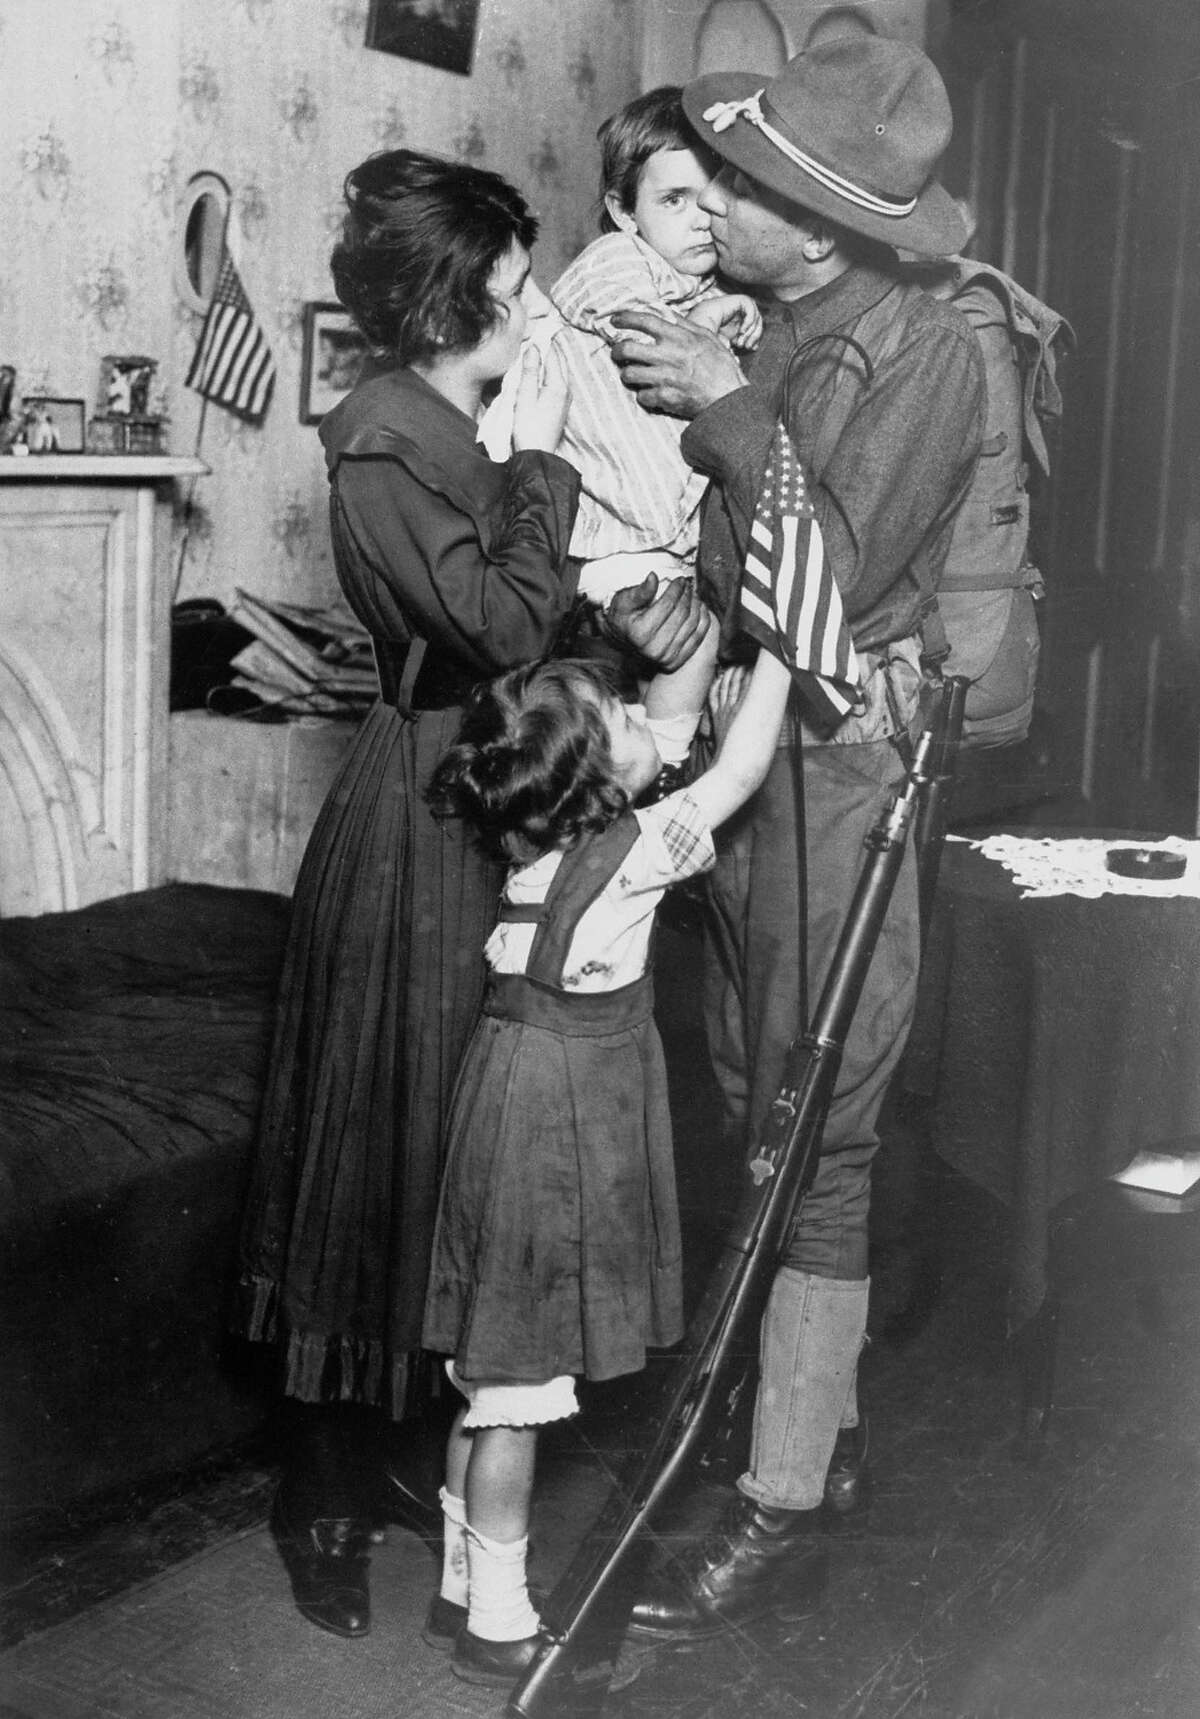 NY National Guardsman Private T. P. Loughlin of 69th New York National Guard Regiment, kissing his little child goodbye as he bids farewell to family before reporting to training camp during WWI, 1917.